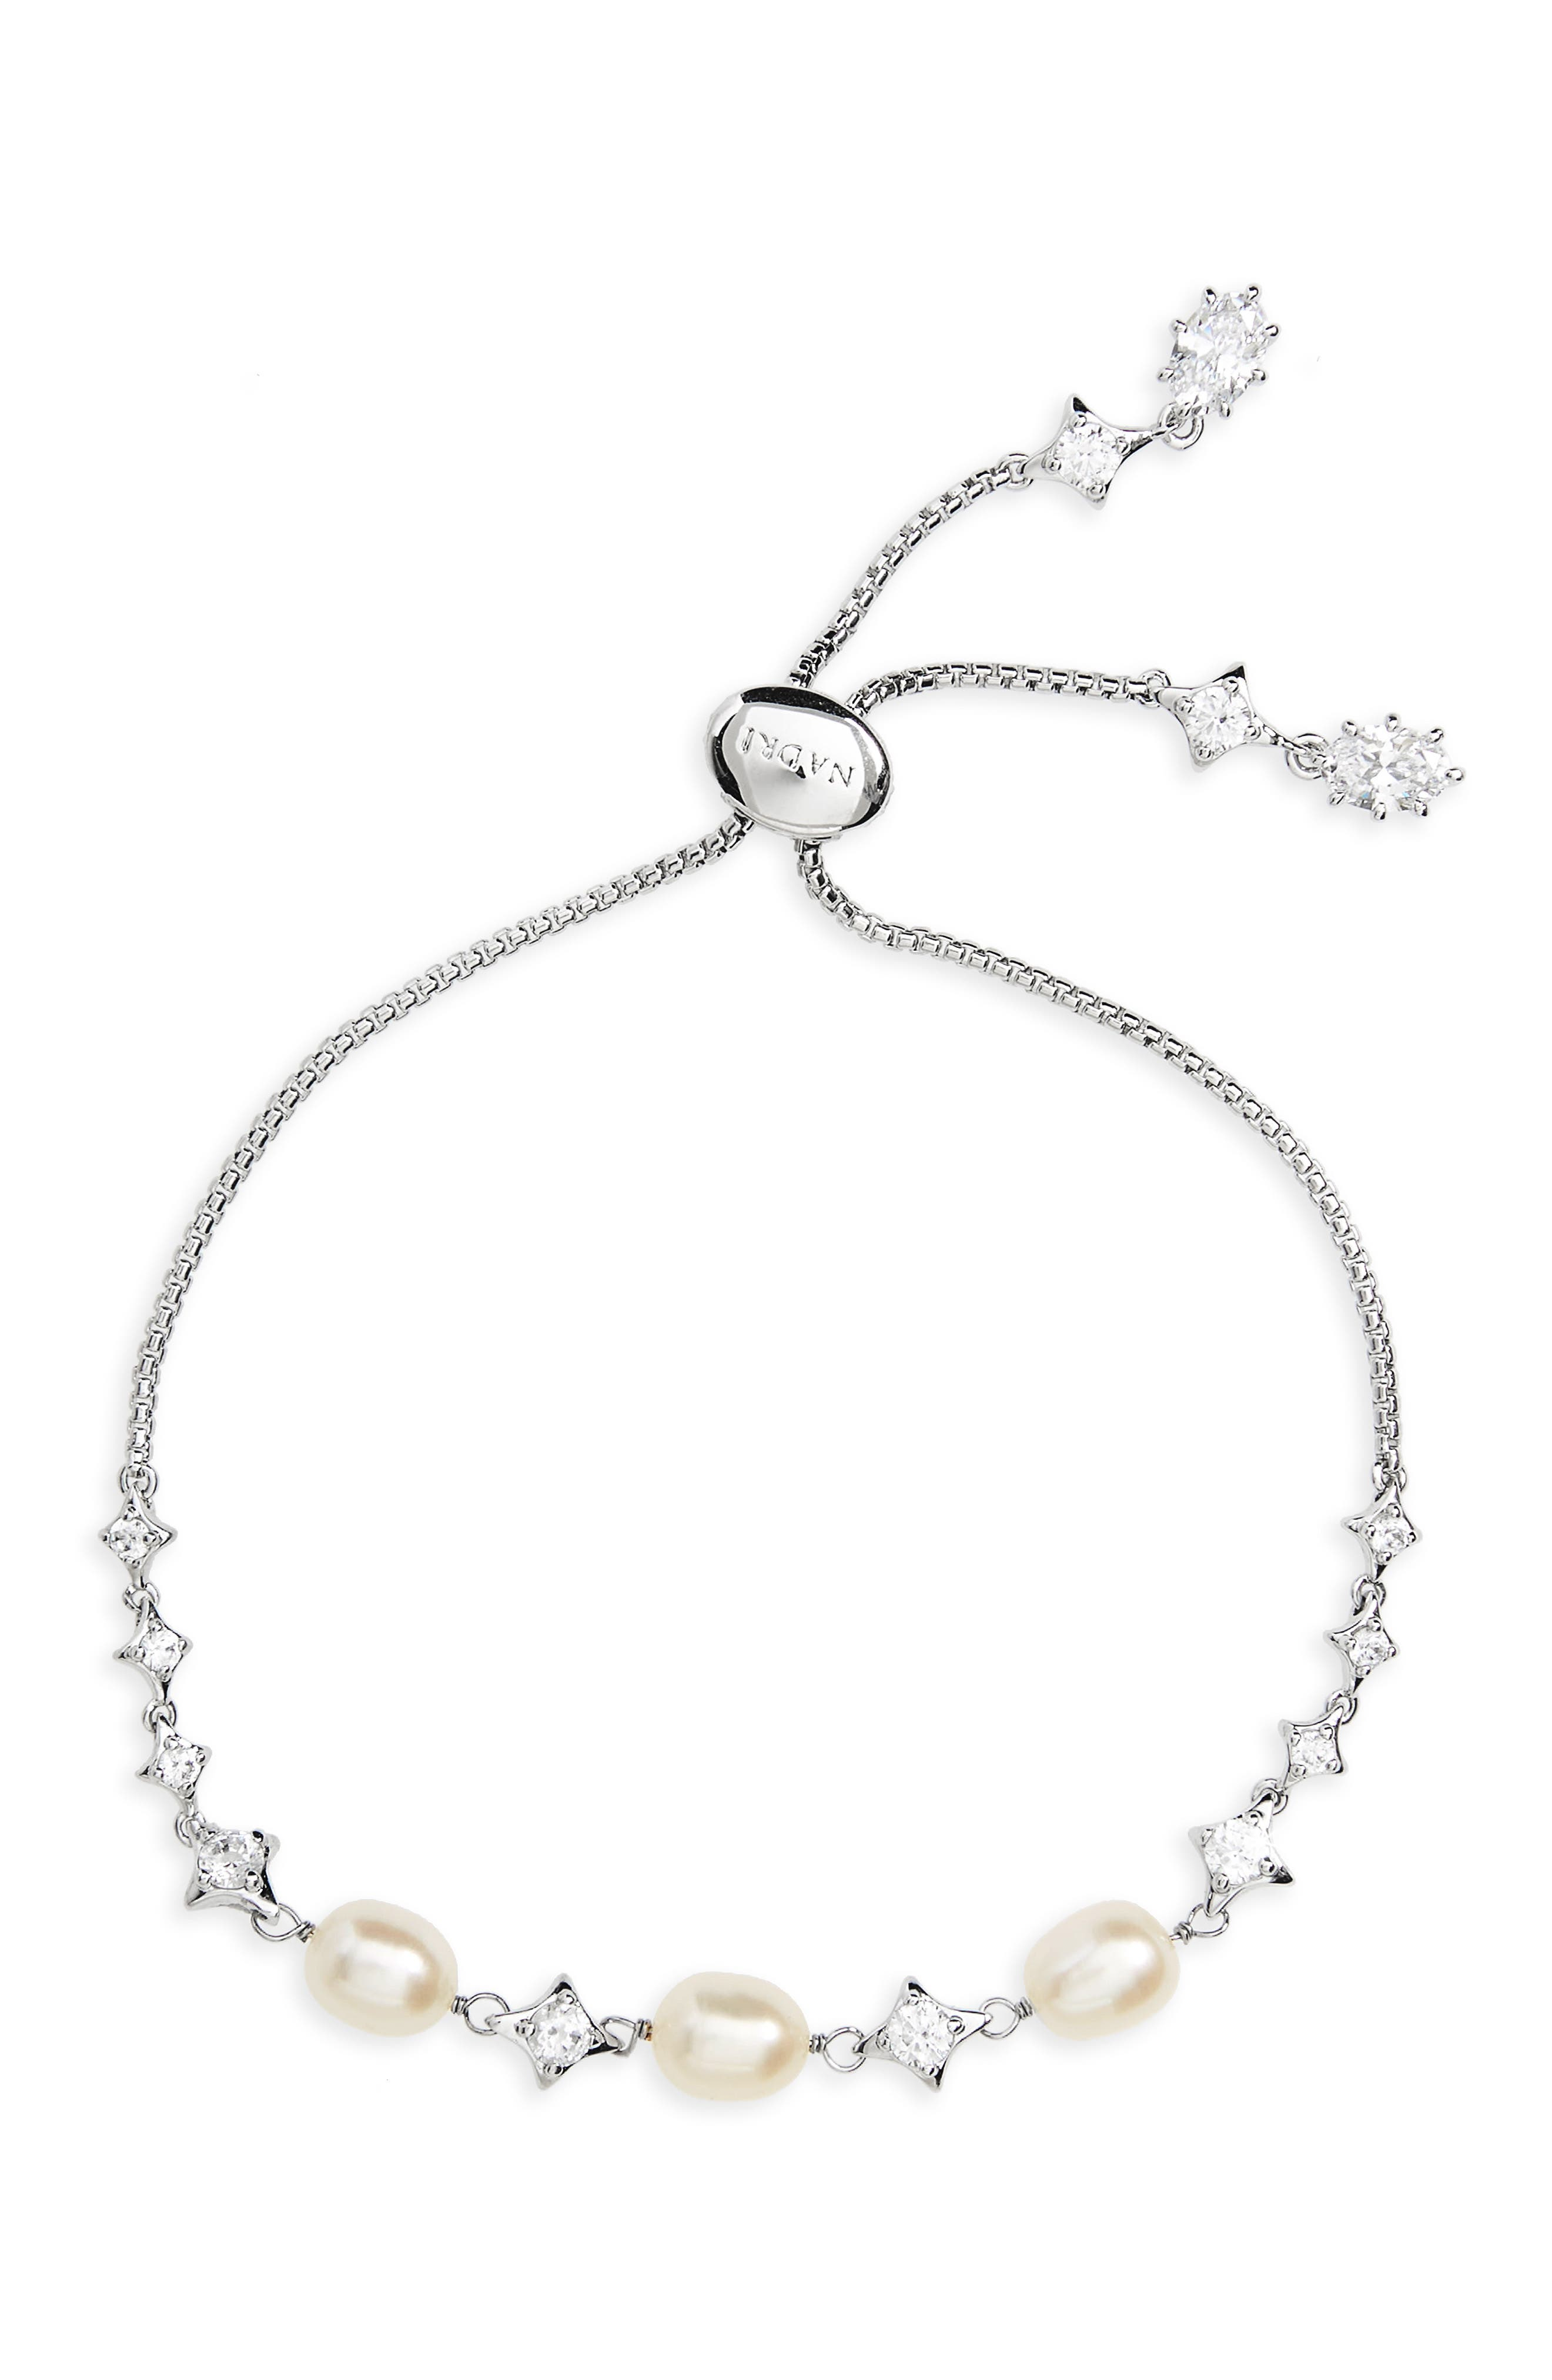 Crystal & Pearl Adjustable Bracelet,                             Main thumbnail 1, color,                             Silver/ White Pearl